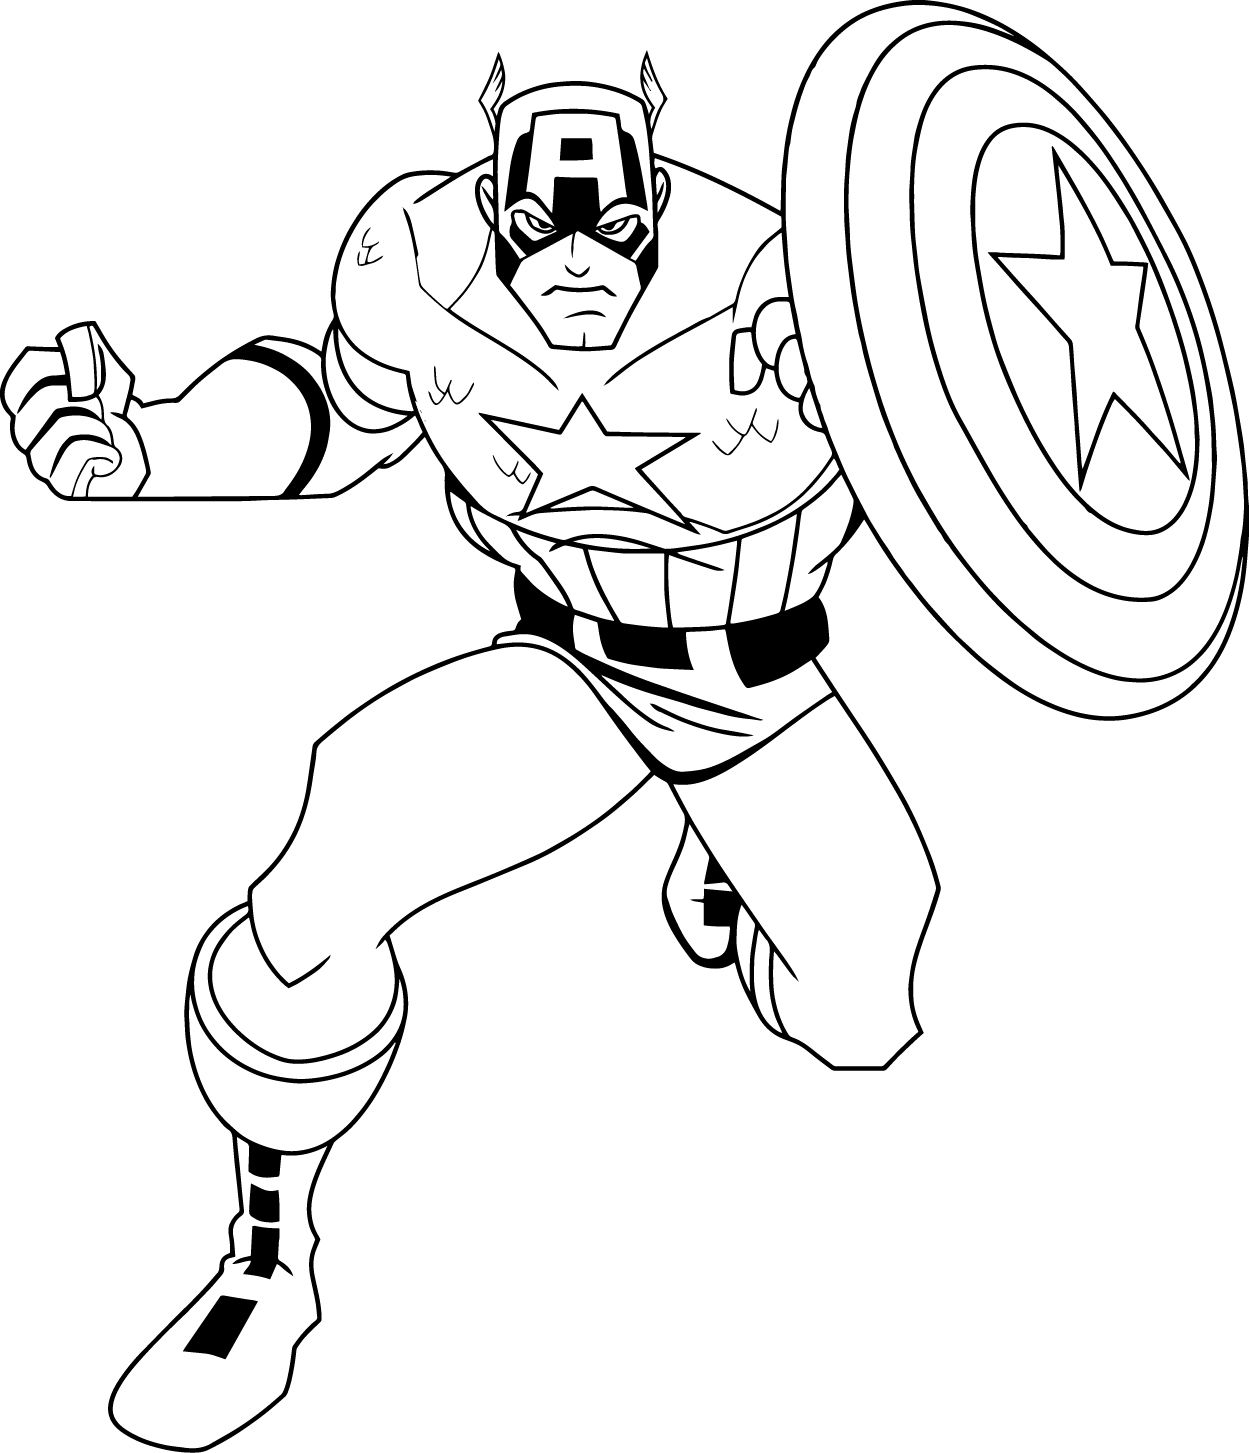 Captain America Coloring Pages | wecoloringpage | Pinterest | Capt ...